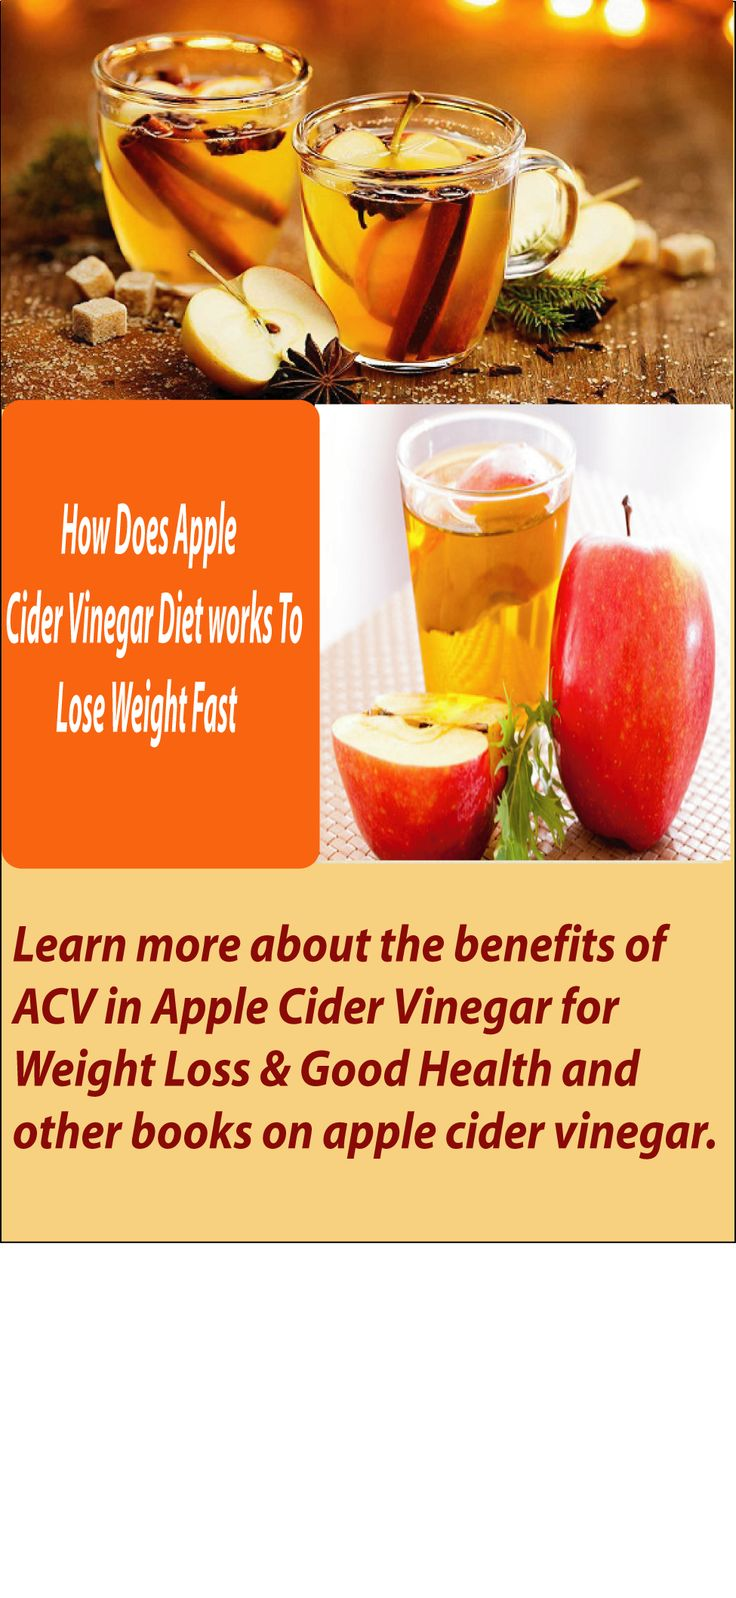 how to use apple cider vinegar to lose weight fast